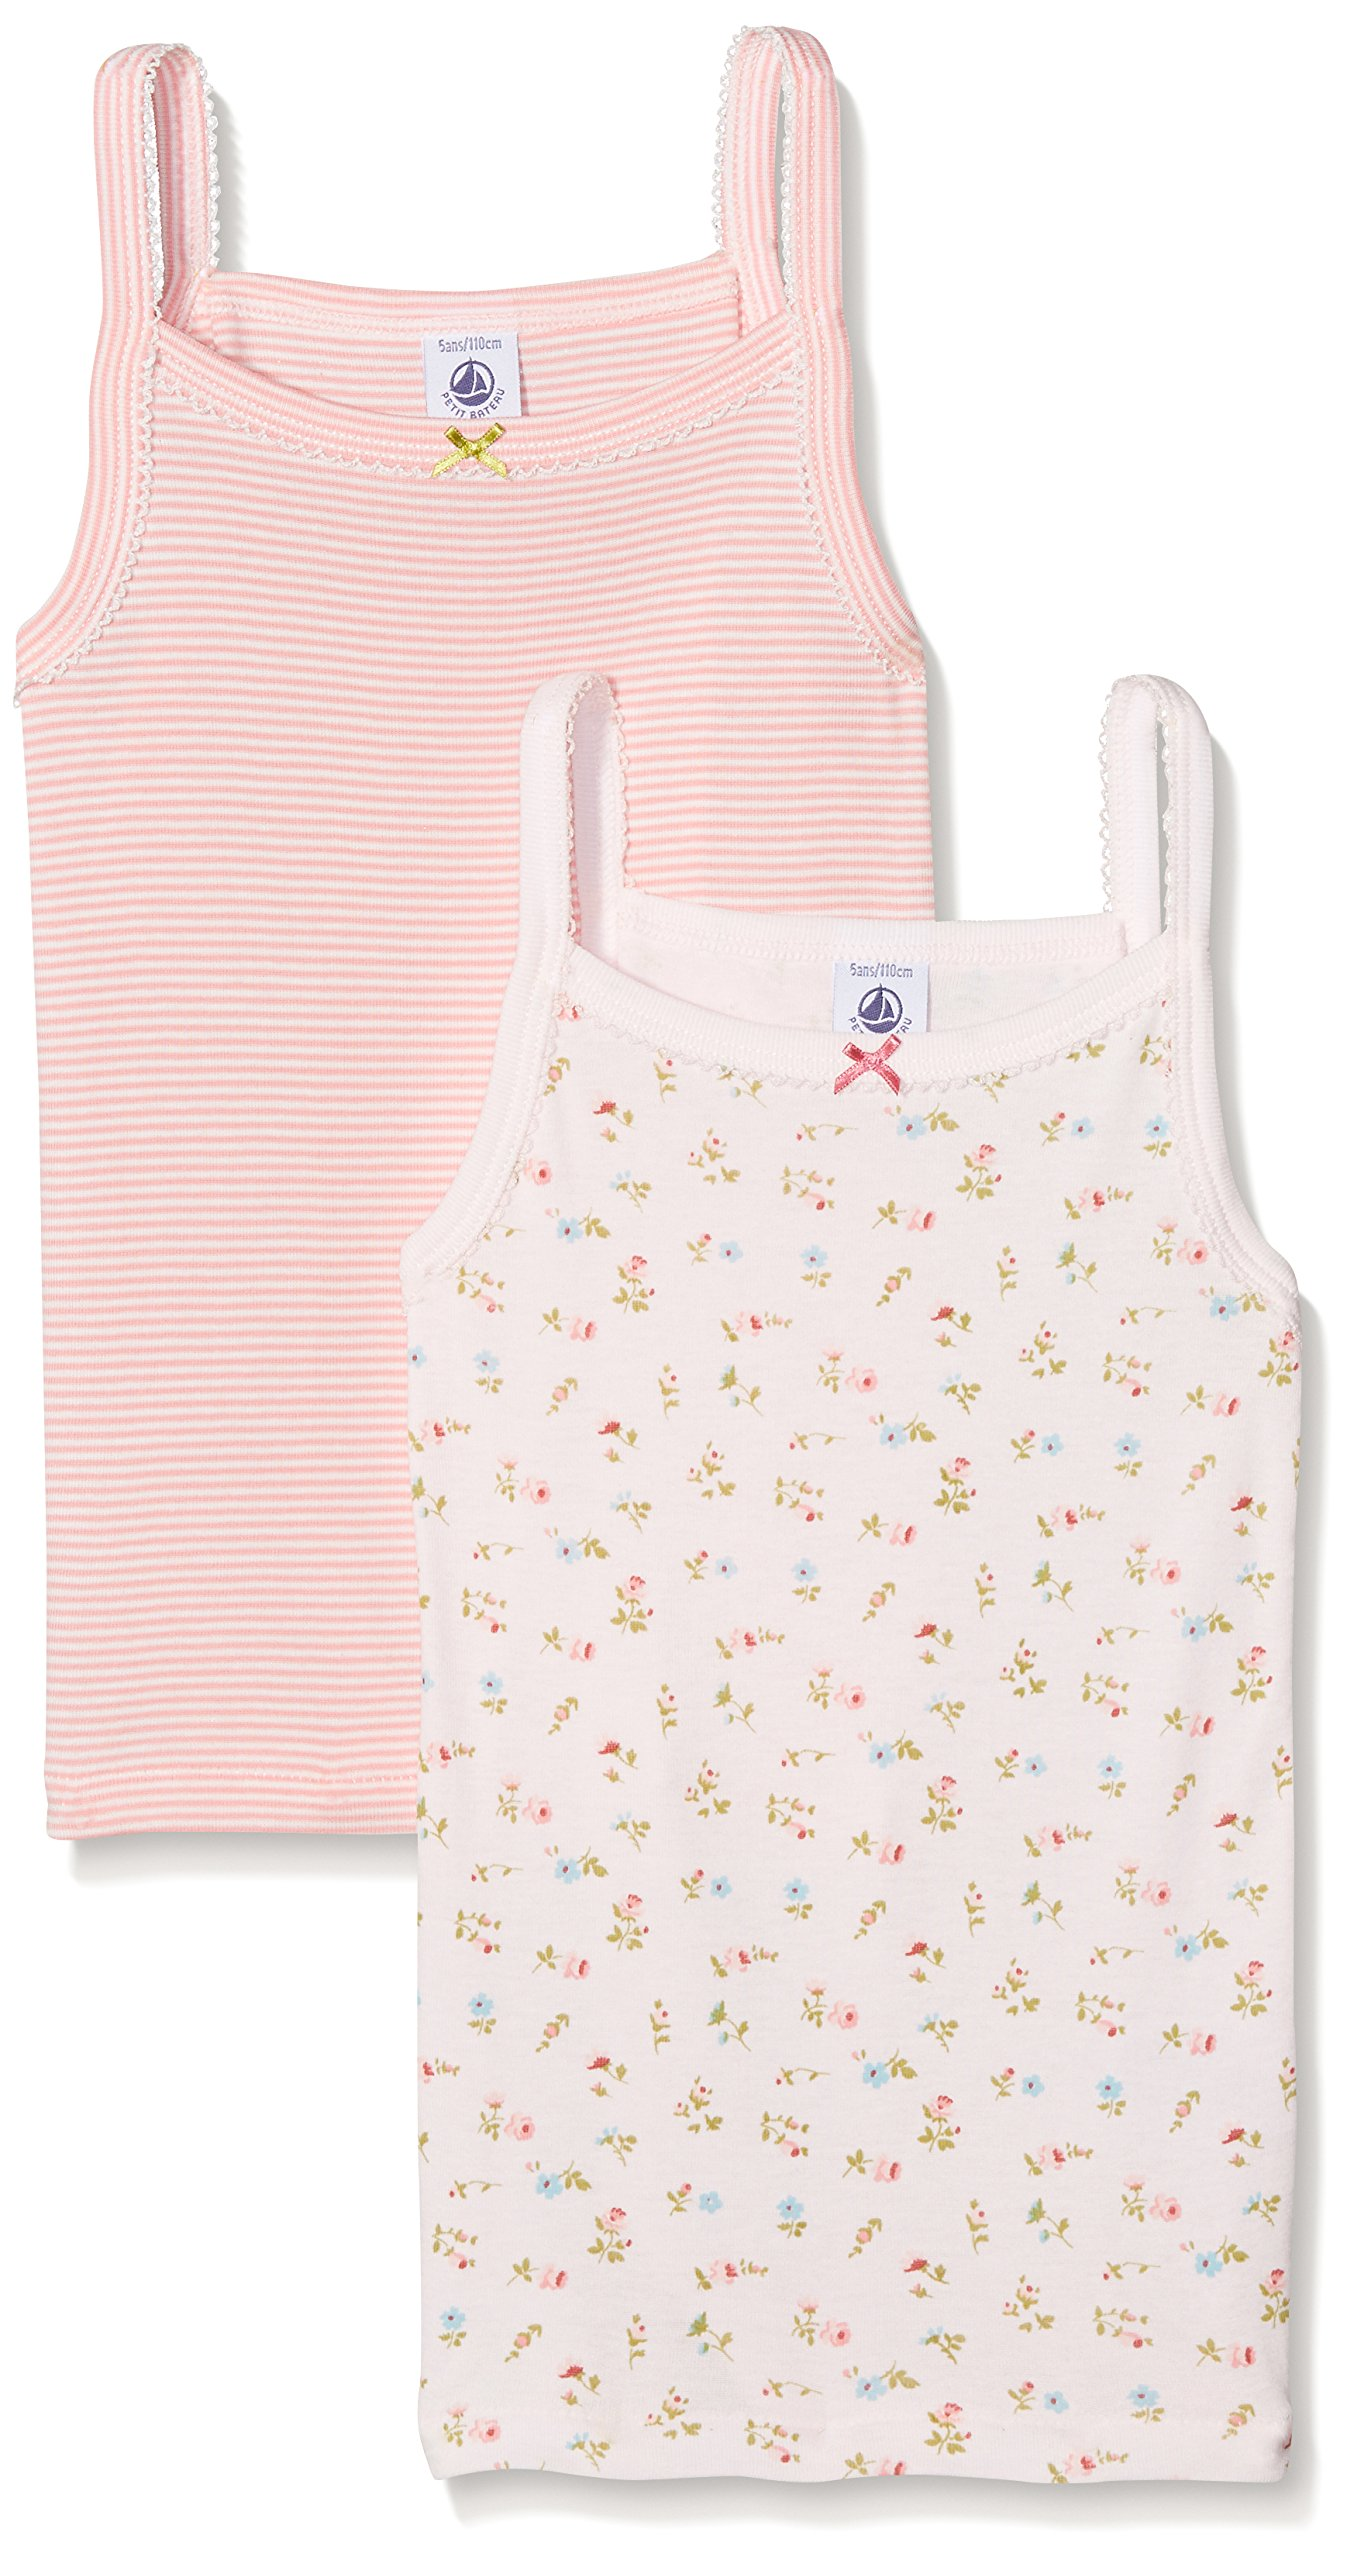 Petit Bateau Pack of 2 Girls Print and Striped Camisoles-Tops Style 25806 Sizes 2-12 (Size 12 Style 25806 Girls Tops)